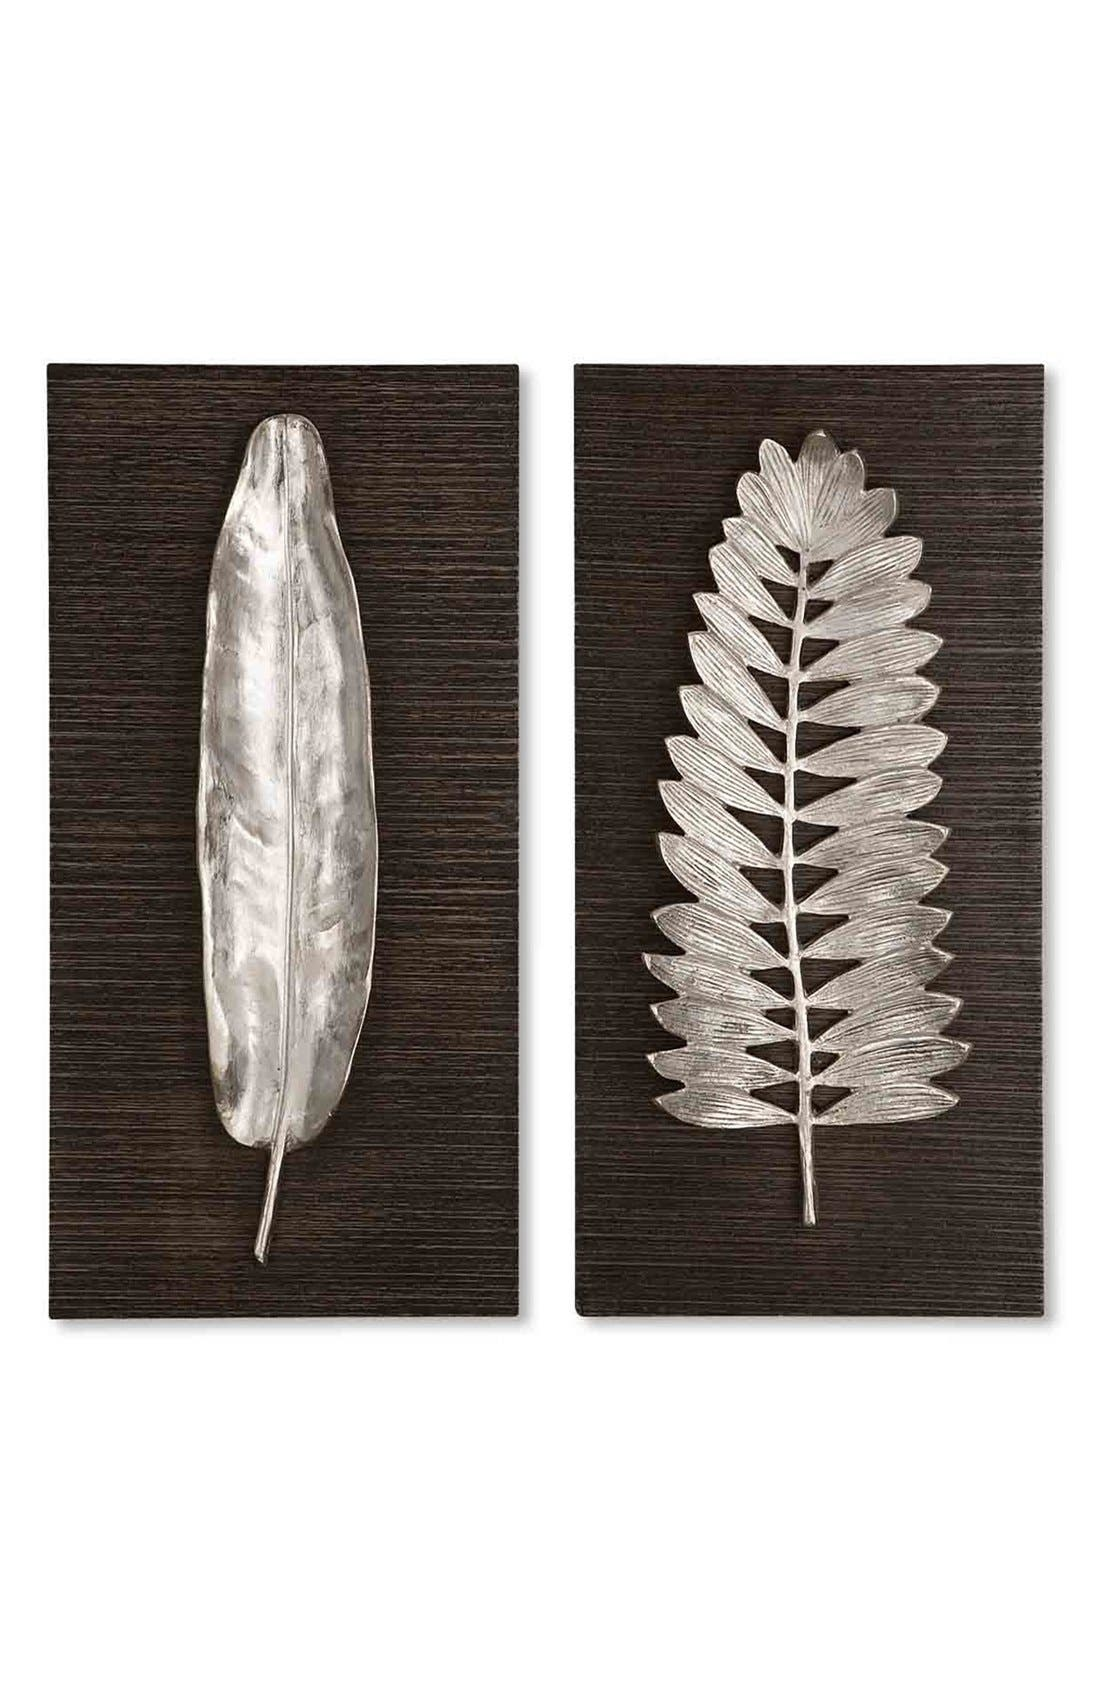 Alternate Image 1 Selected - Uttermost 'Silver Leaves' Wall Art (Set of 2)